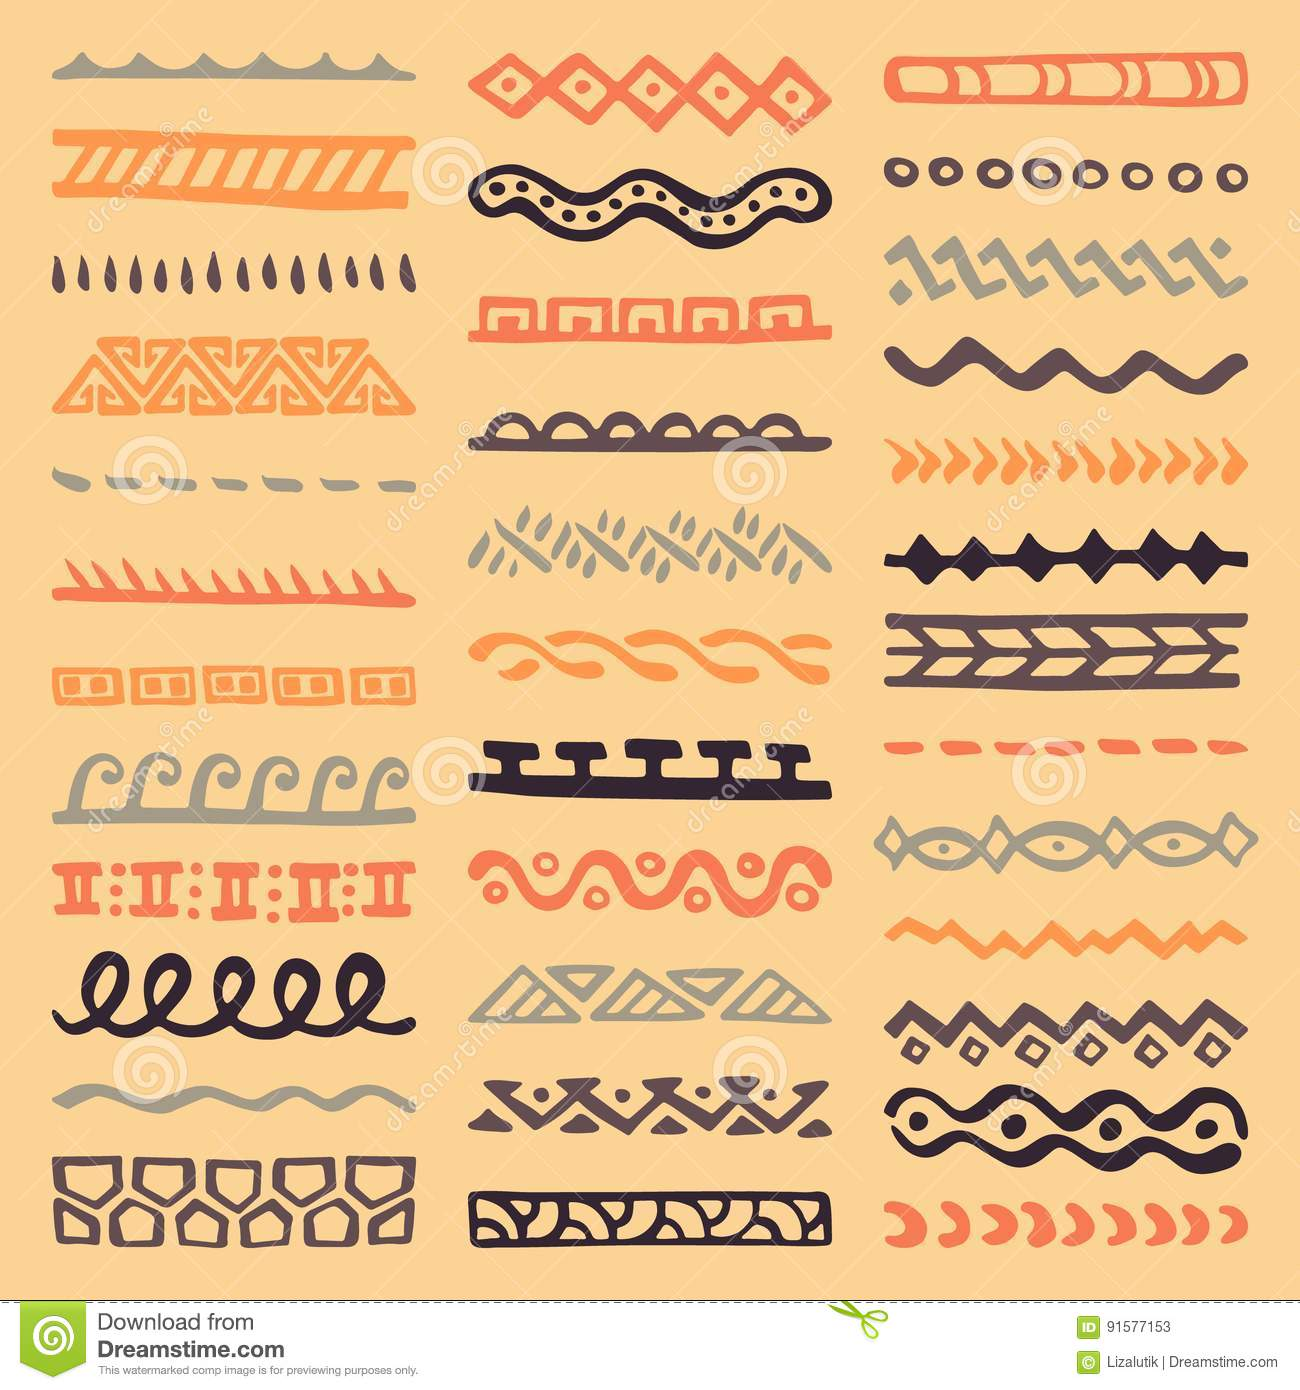 f1f9b4f34f85c Borders Collection In Ethnic Style Stock Vector - Illustration of ...